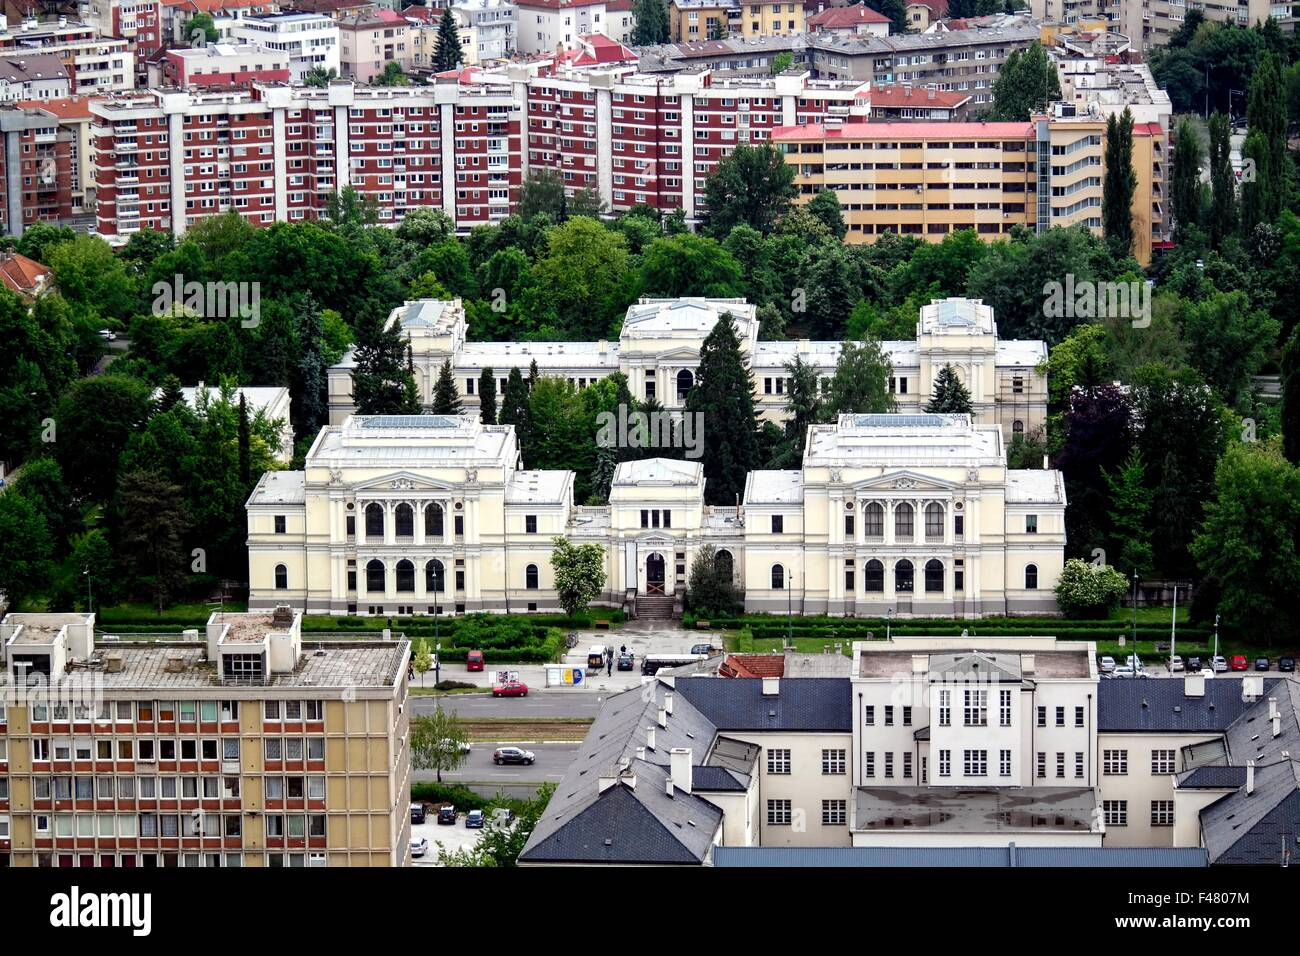 The National Museum of Bosnia and Herzegovina seen from Avaz Twist Tower. - Stock Image